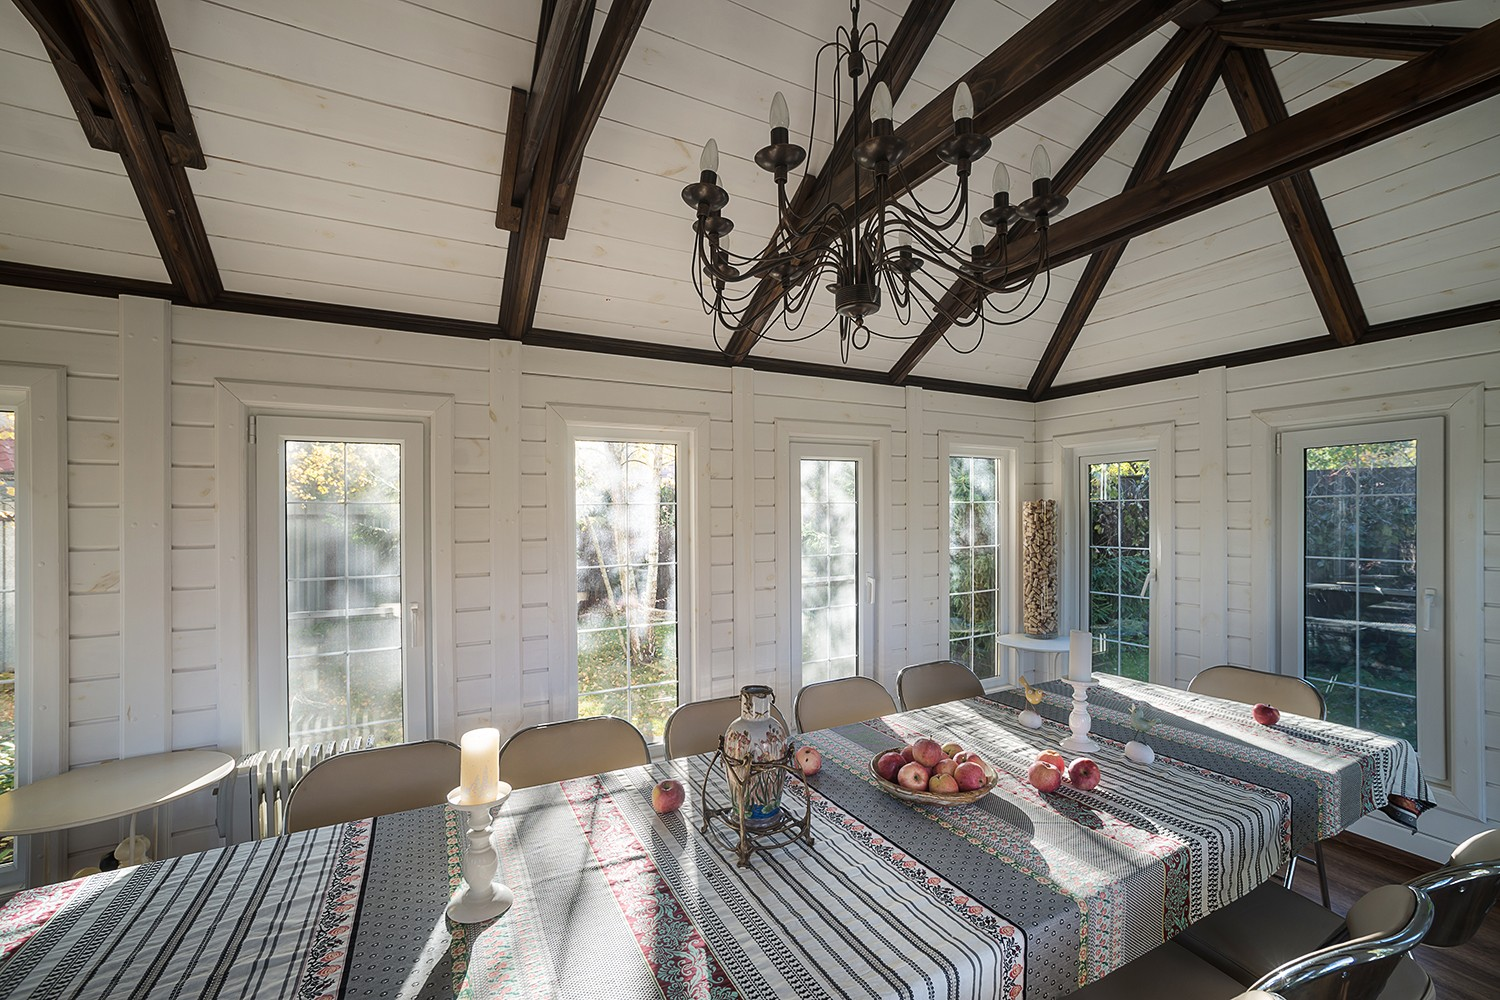 Summer house veranda Real estate photos The building is for-sale Photographer Kirill Toll